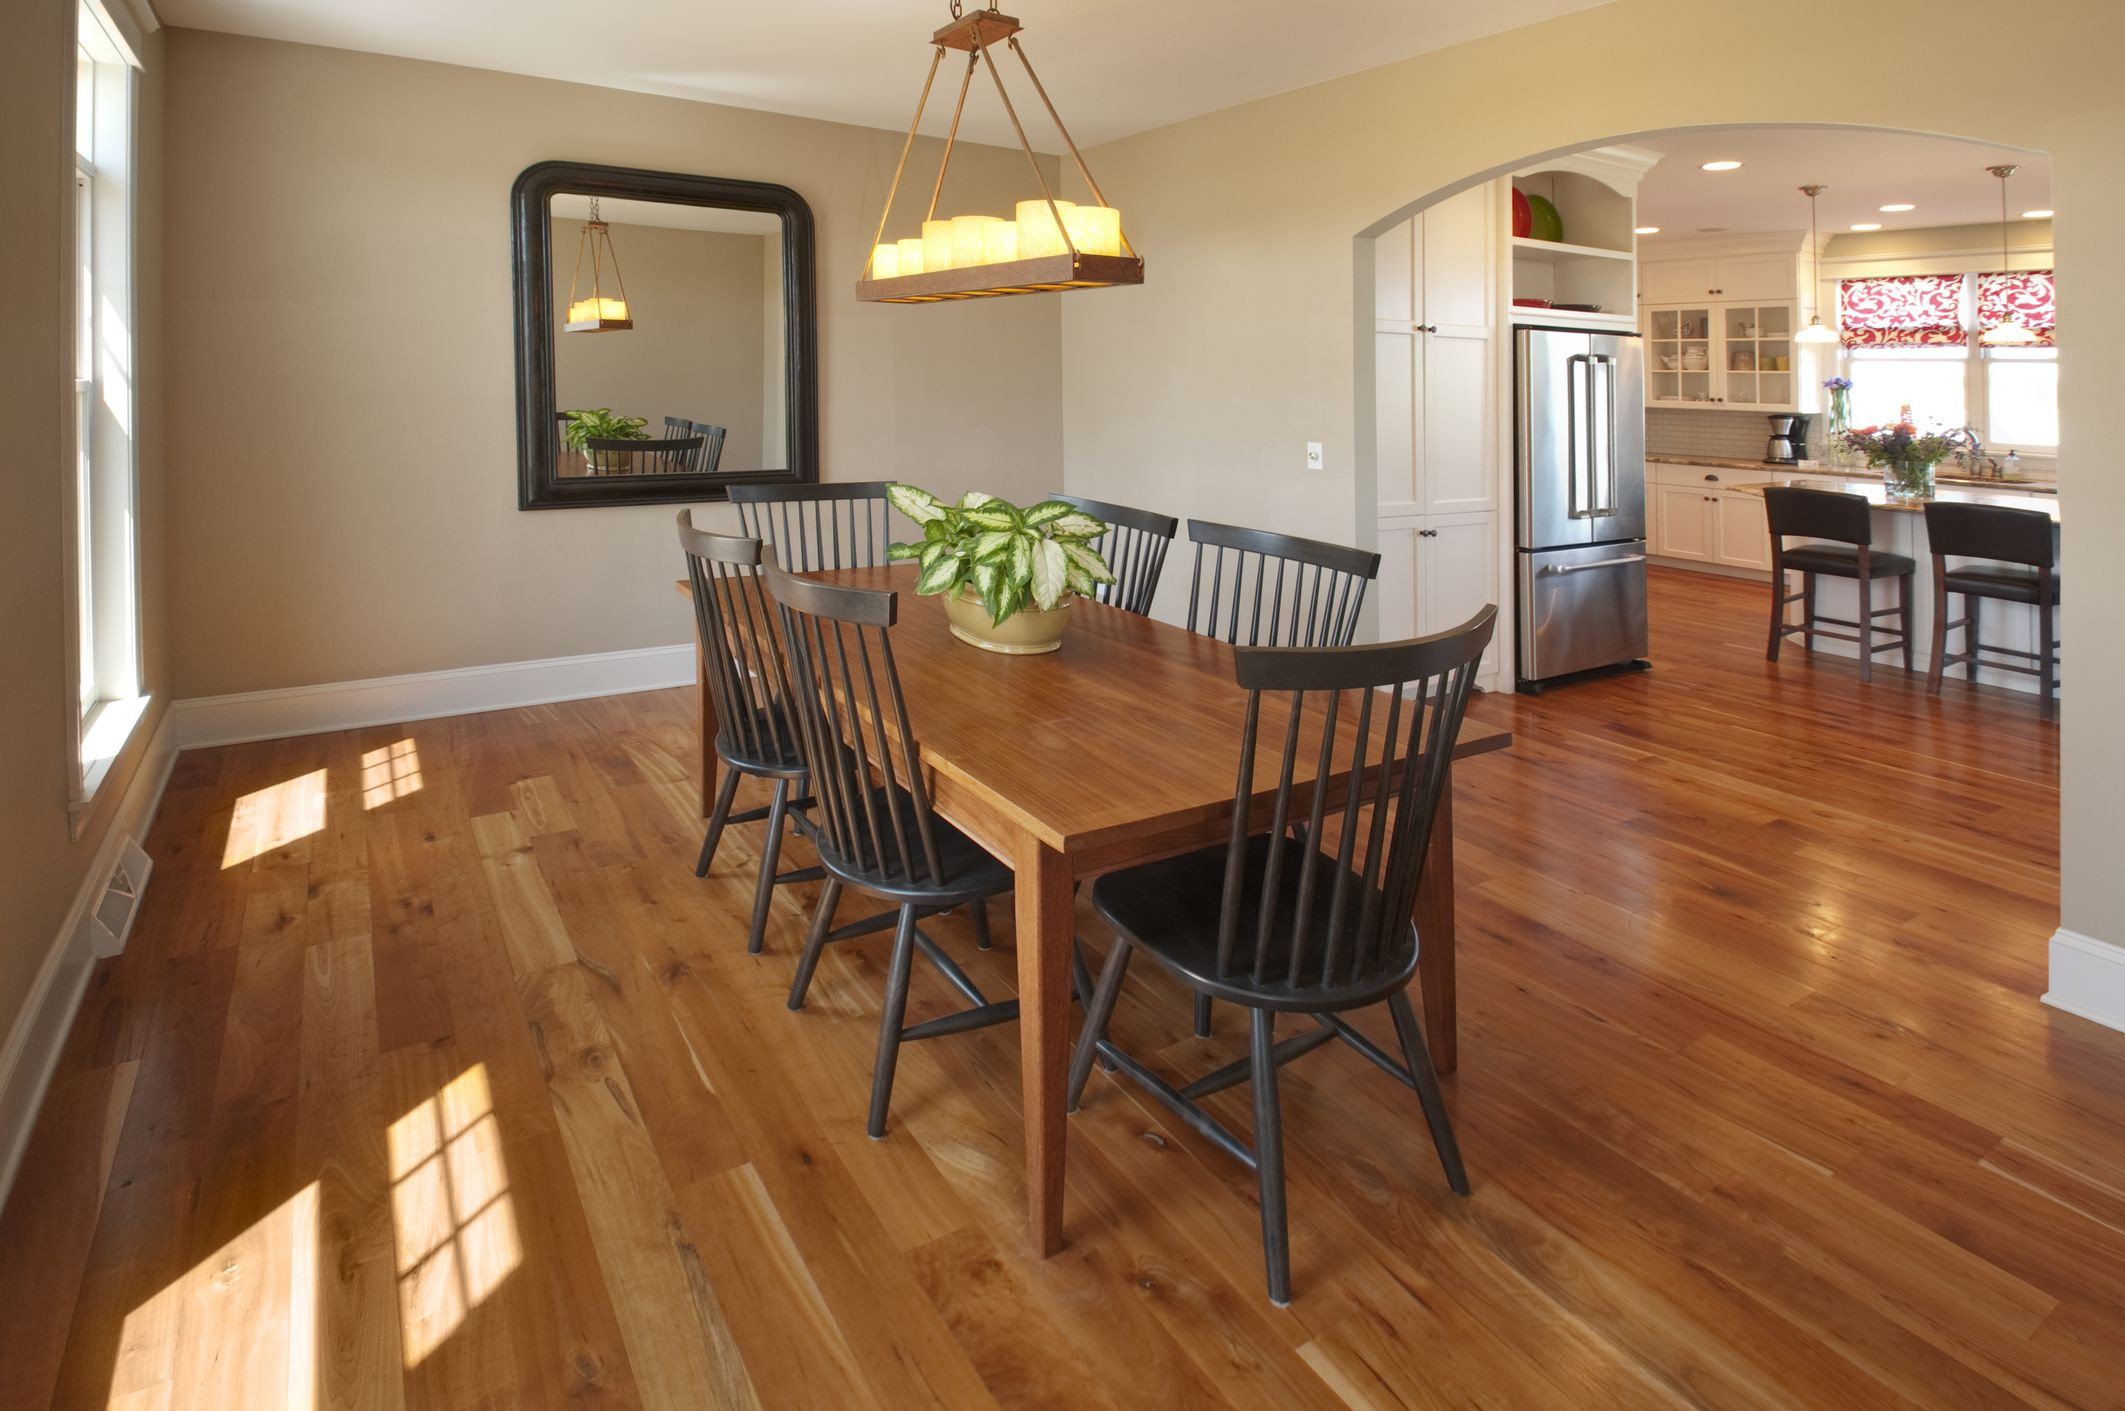 rustic hardwood flooring for sale of a beginners overview of hardwood flooring pertaining to hardwood 02 58f6d0a53df78ca1599e5b0d